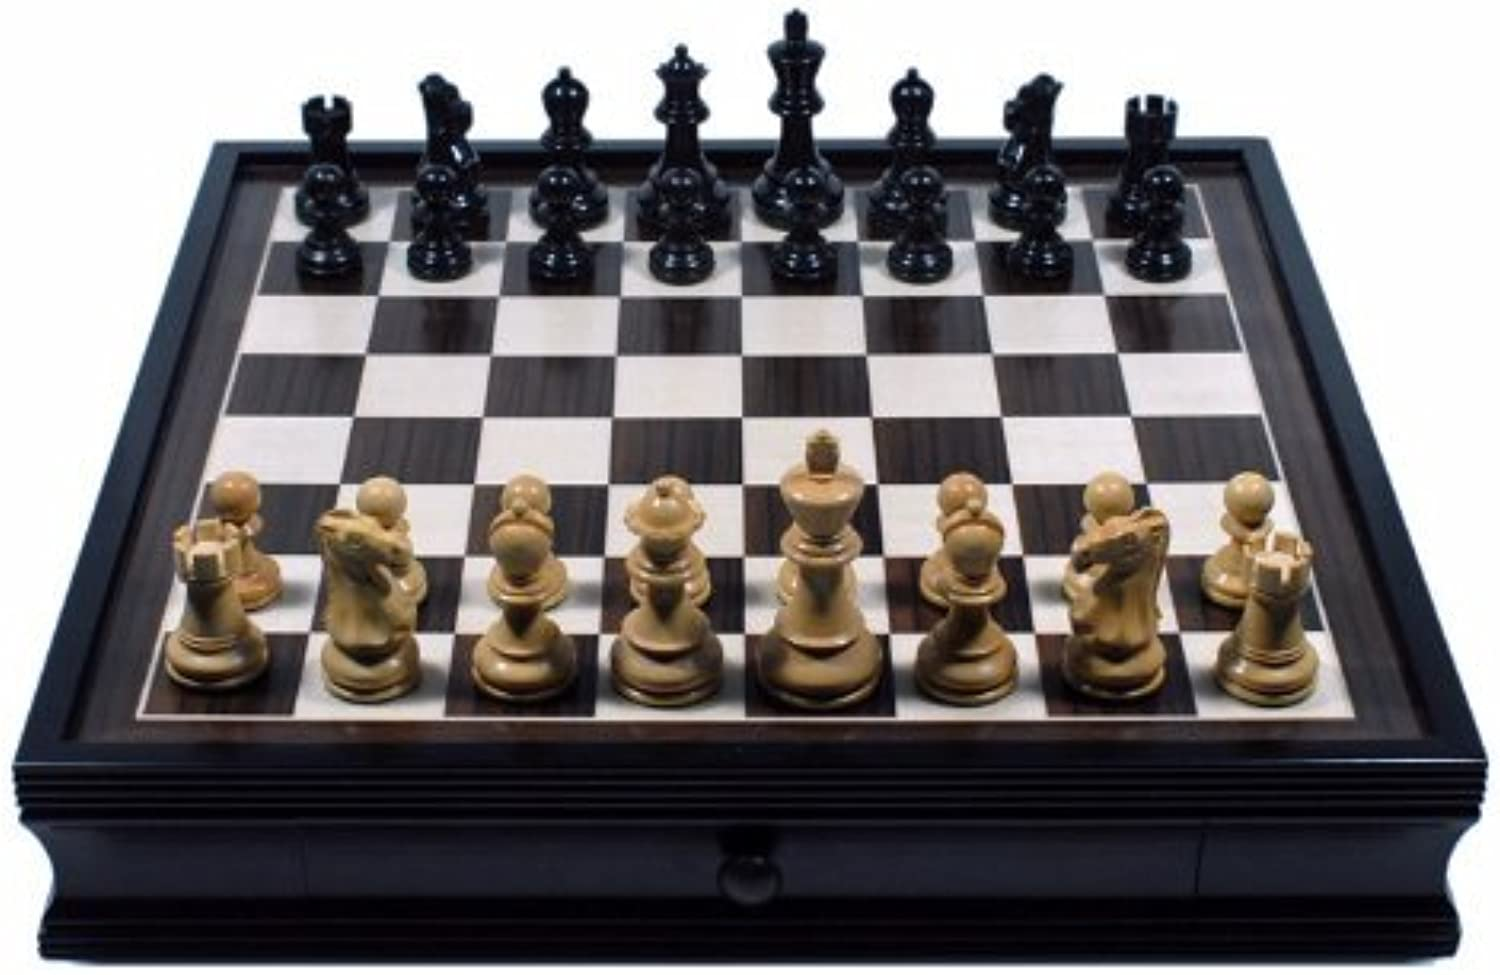 English Chess Set with Pullout Storage Drawers  19 inch by Wood Expressions